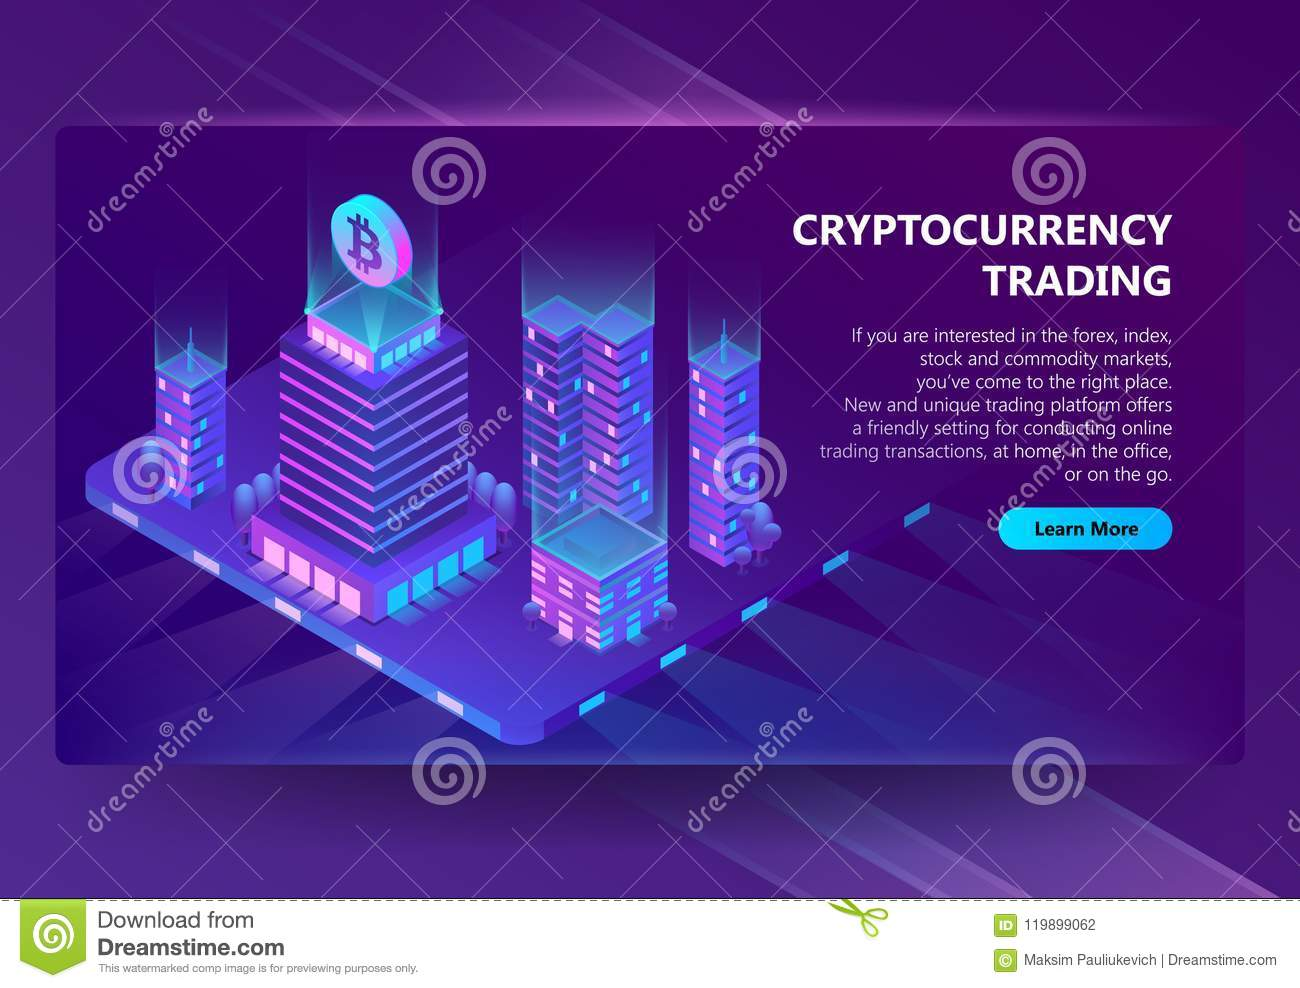 if you trade cryptocurrency for real estate